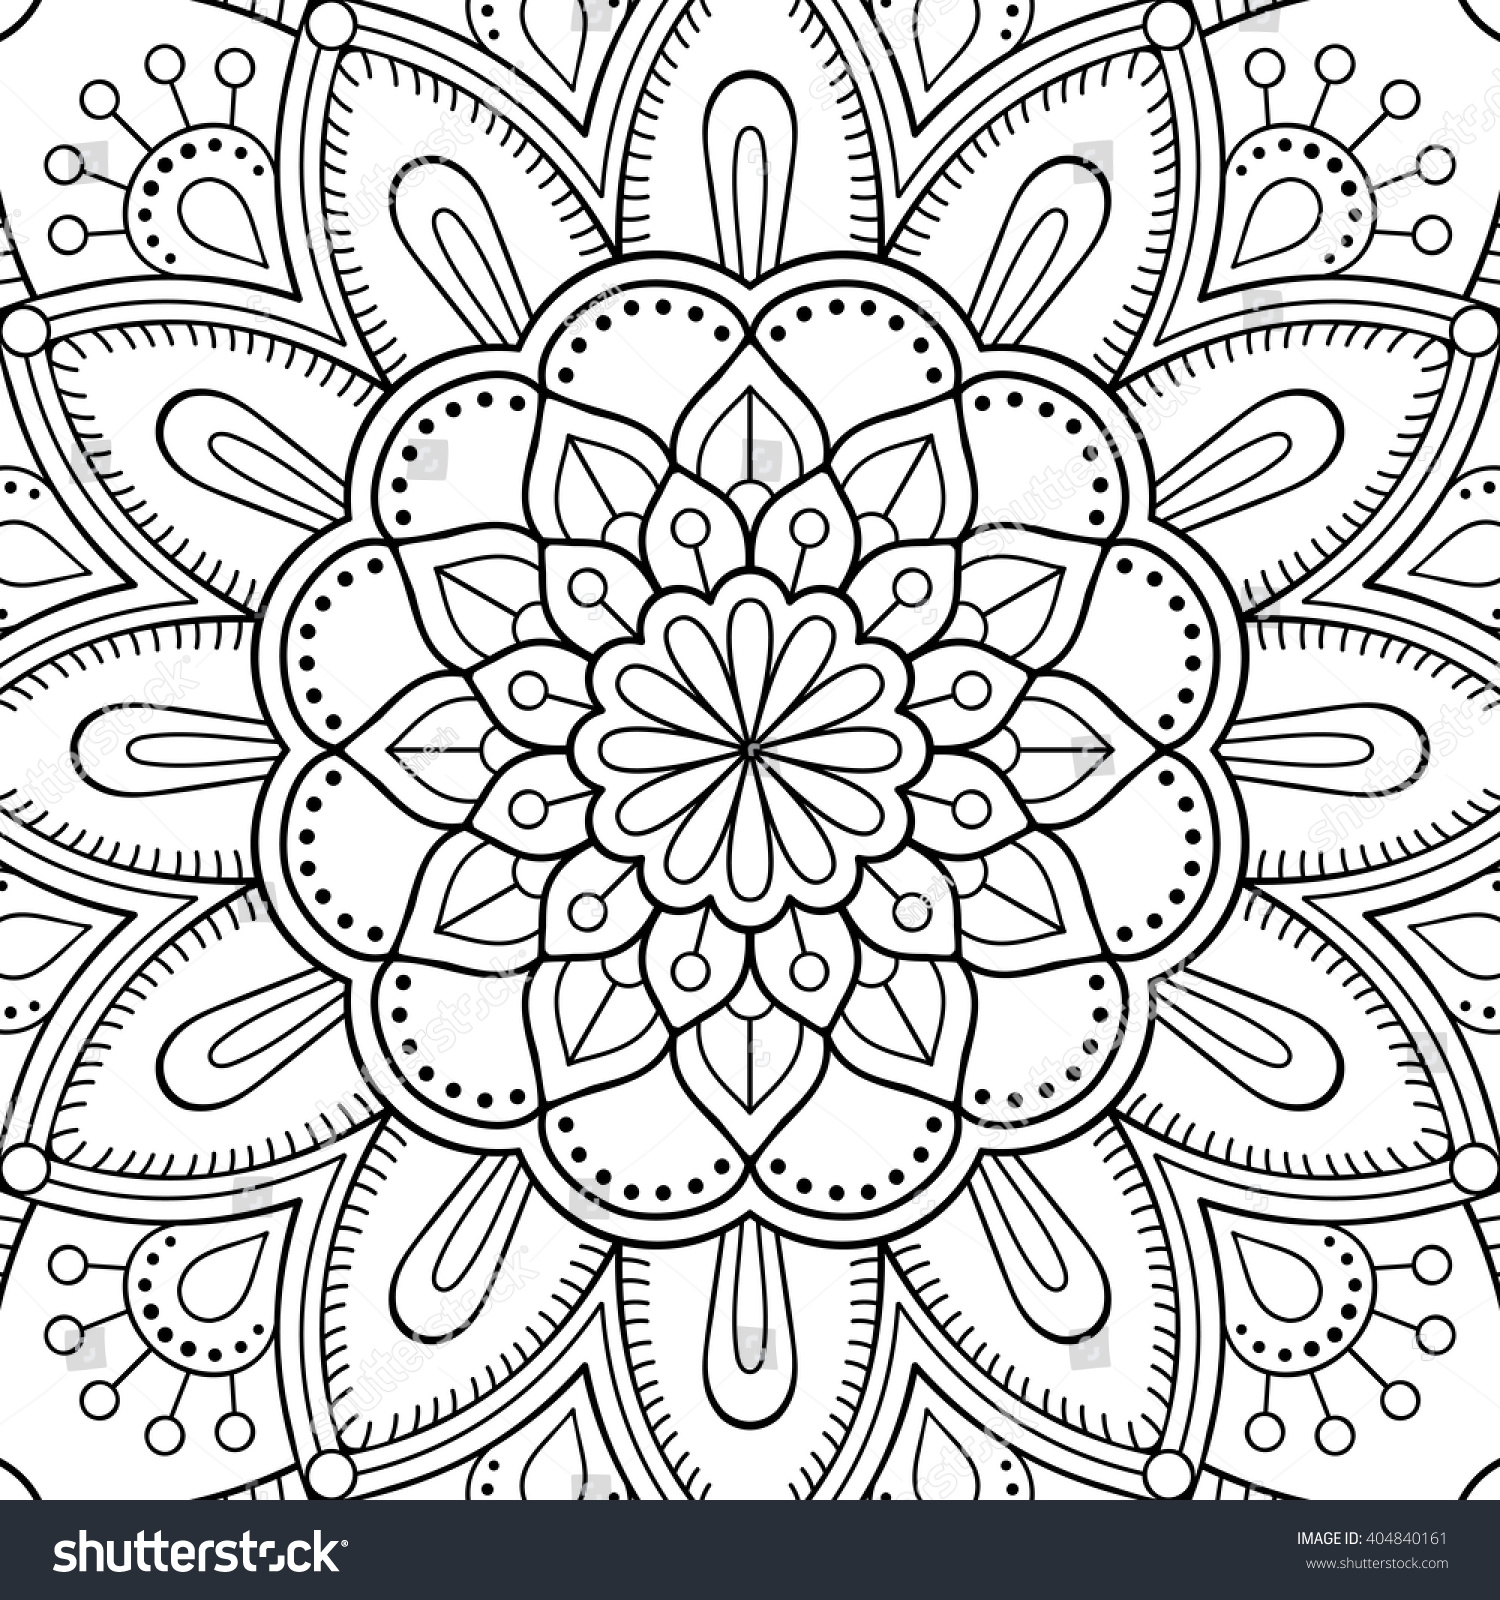 Chinese mandala coloring pages - Mandala Coloring Page Vintage Decorative Elements Oriental Pattern Vector Illustration Islam